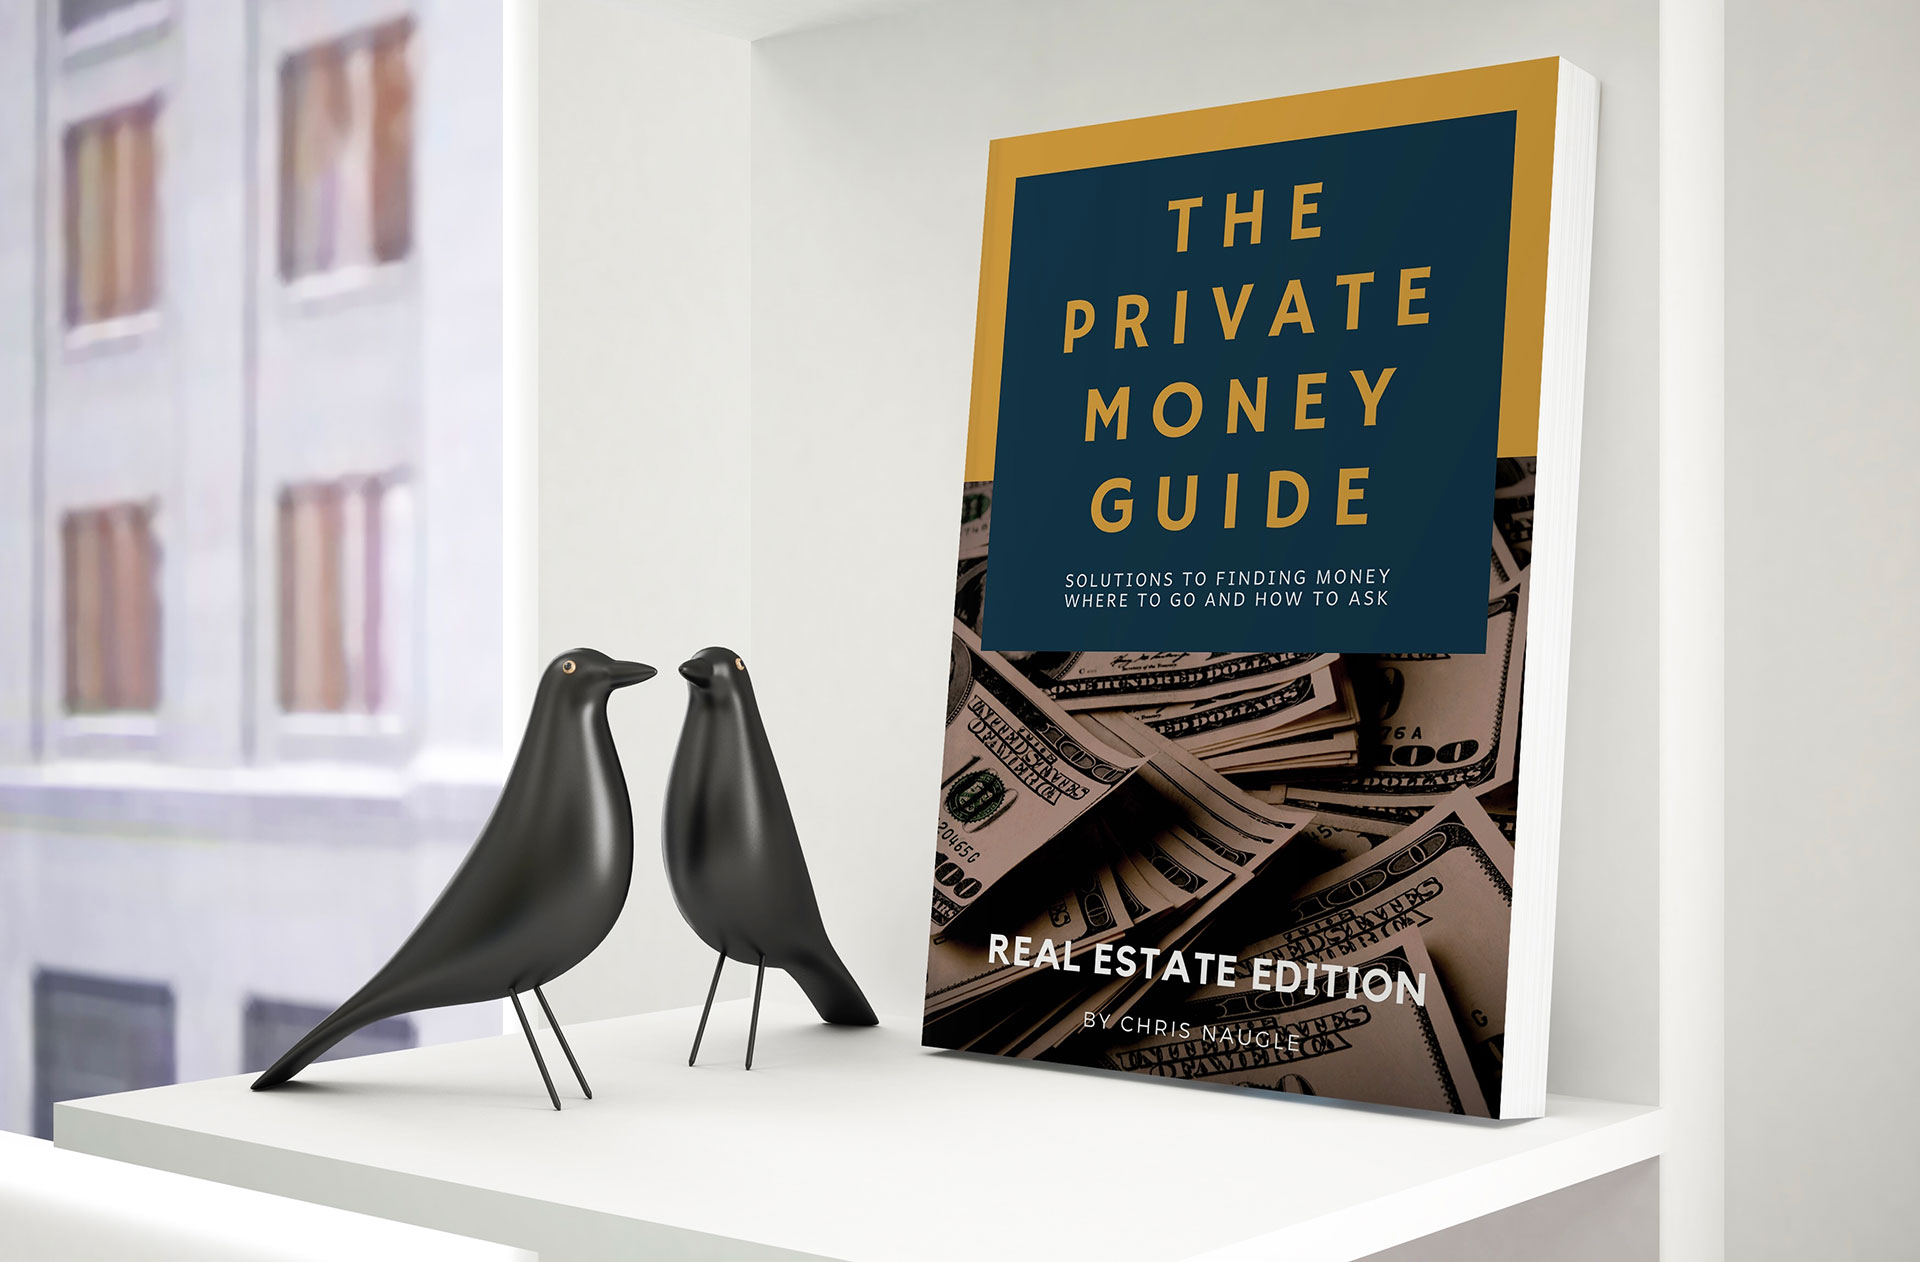 The Private Money Guide